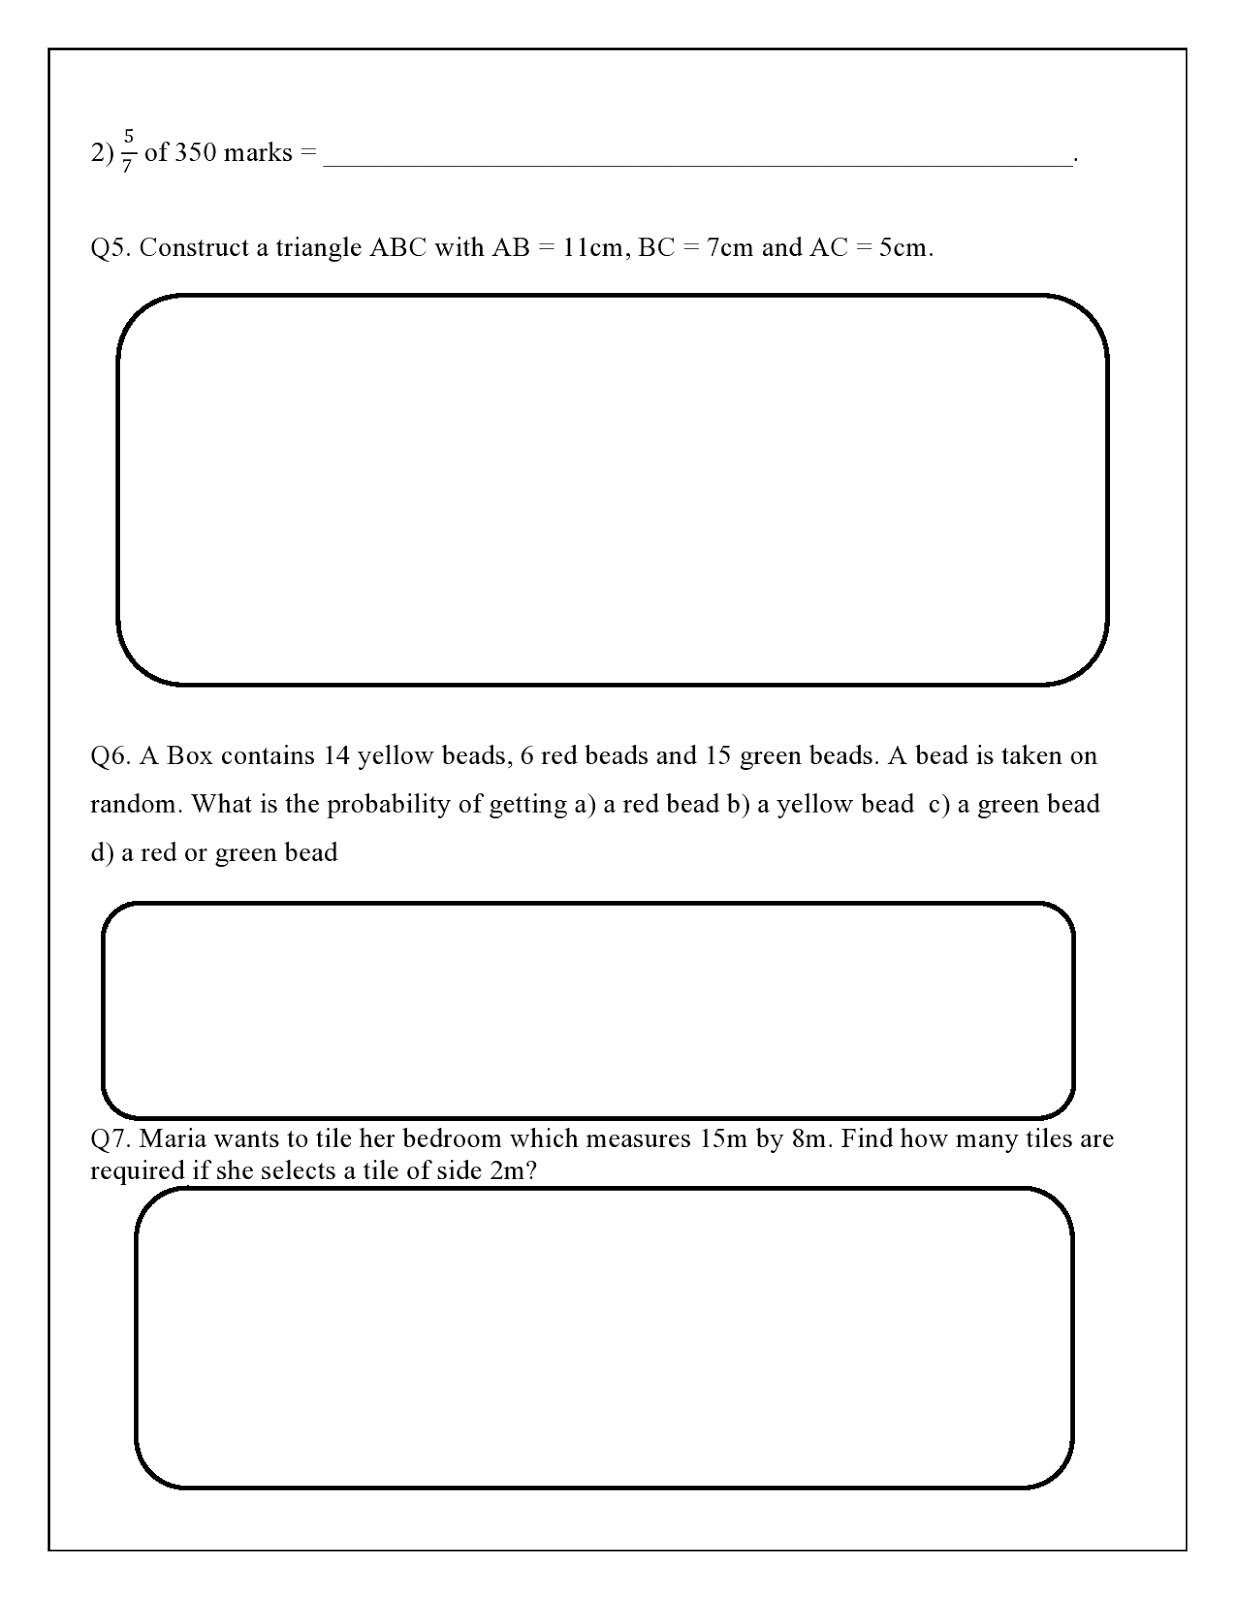 hight resolution of WORLD SCHOOL OMAN: Revision Worksheets for Grade 7 as on 09-05-2019